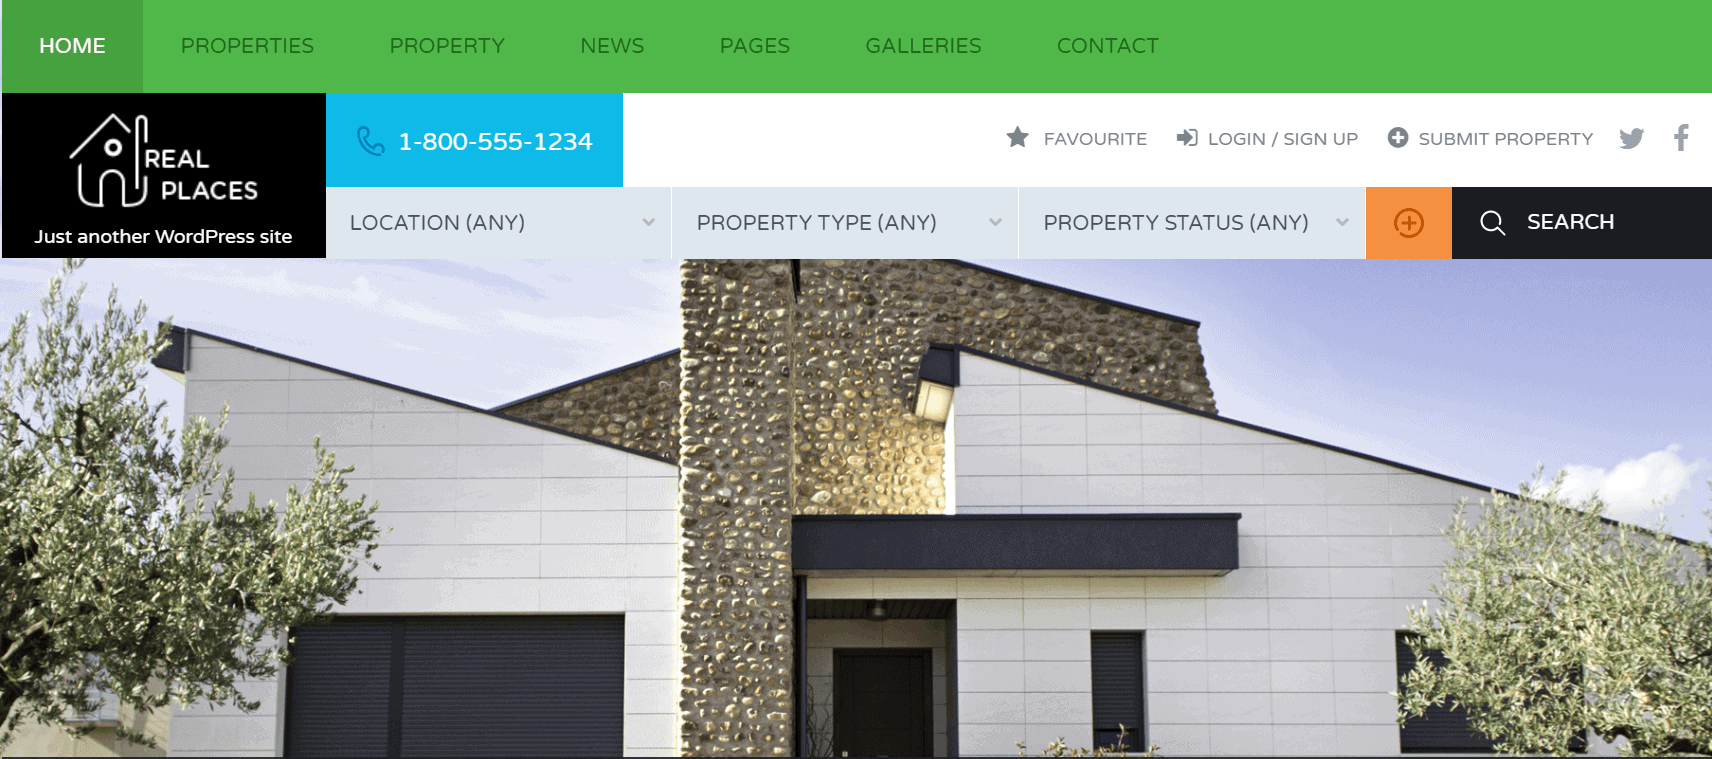 Top 20 Eye-Catching WordPress Themes for Real Estate Listing Websites